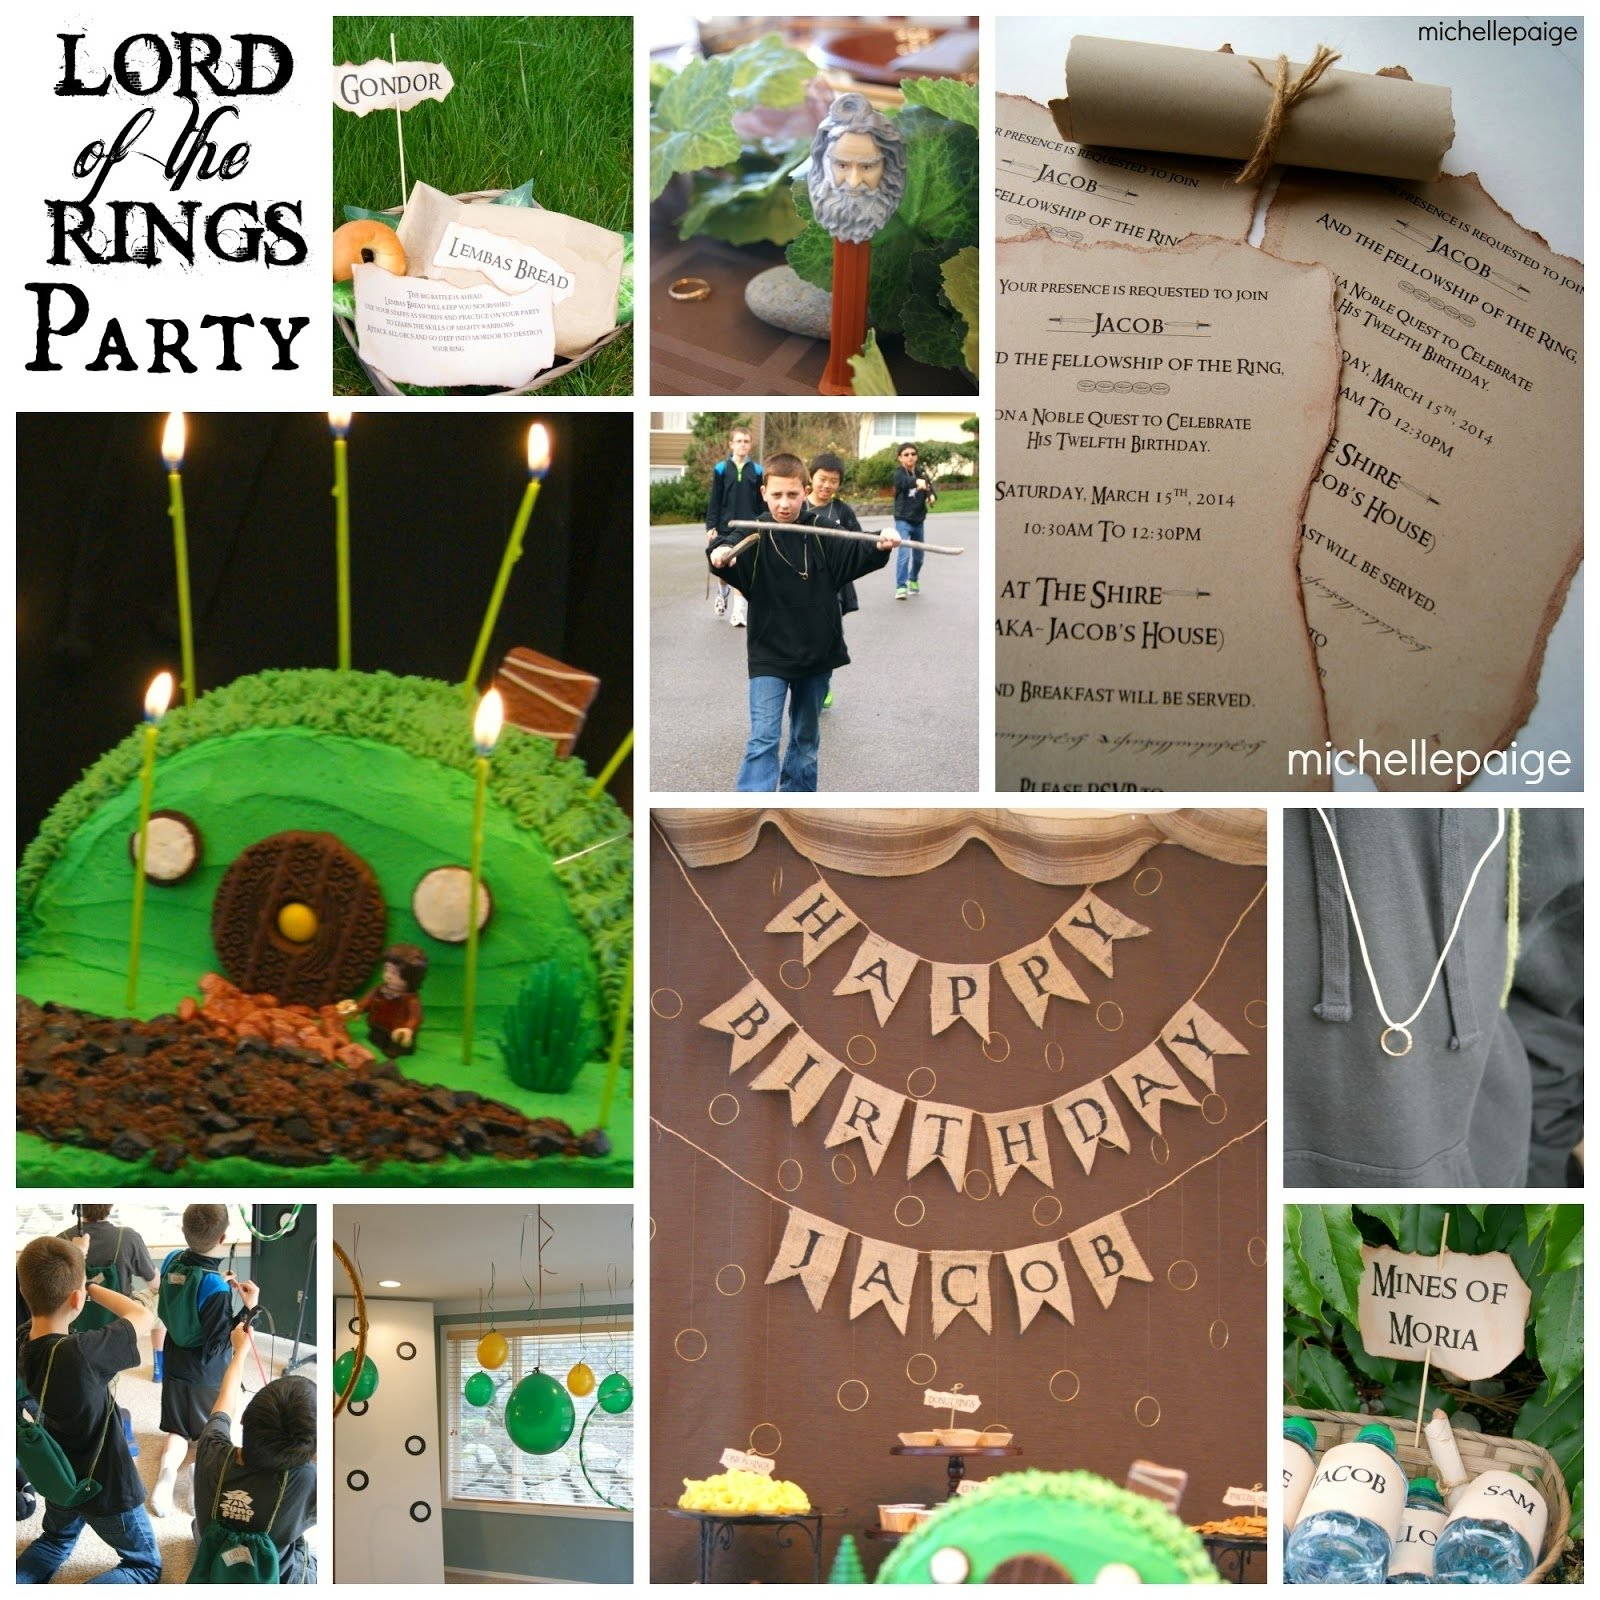 10 Pretty Lord Of The Rings Party Ideas michelle paige blogs lord of the rings birthday party 1 2020